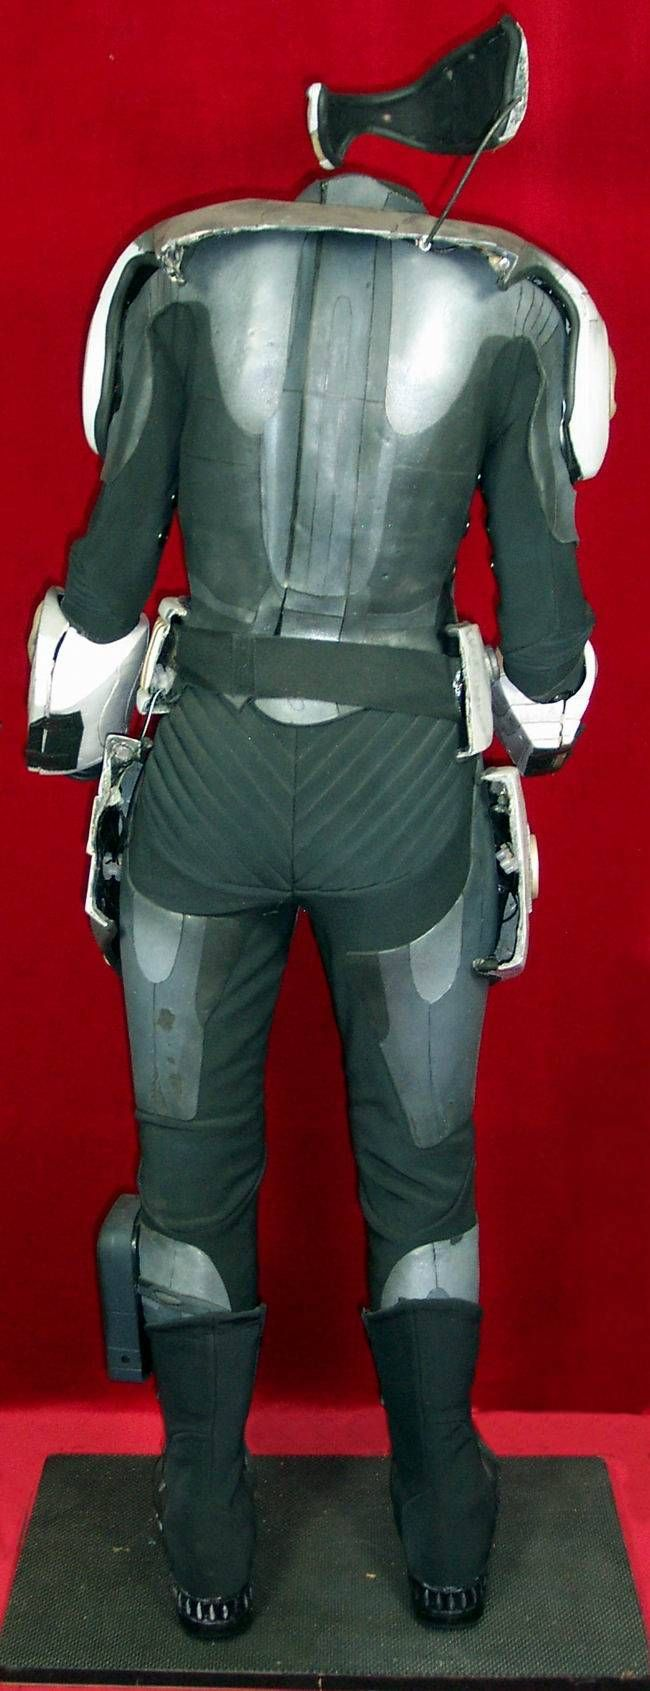 Penny Robinson Light Up Spacesuit   Prop Store - Ultimate Movie Collectables